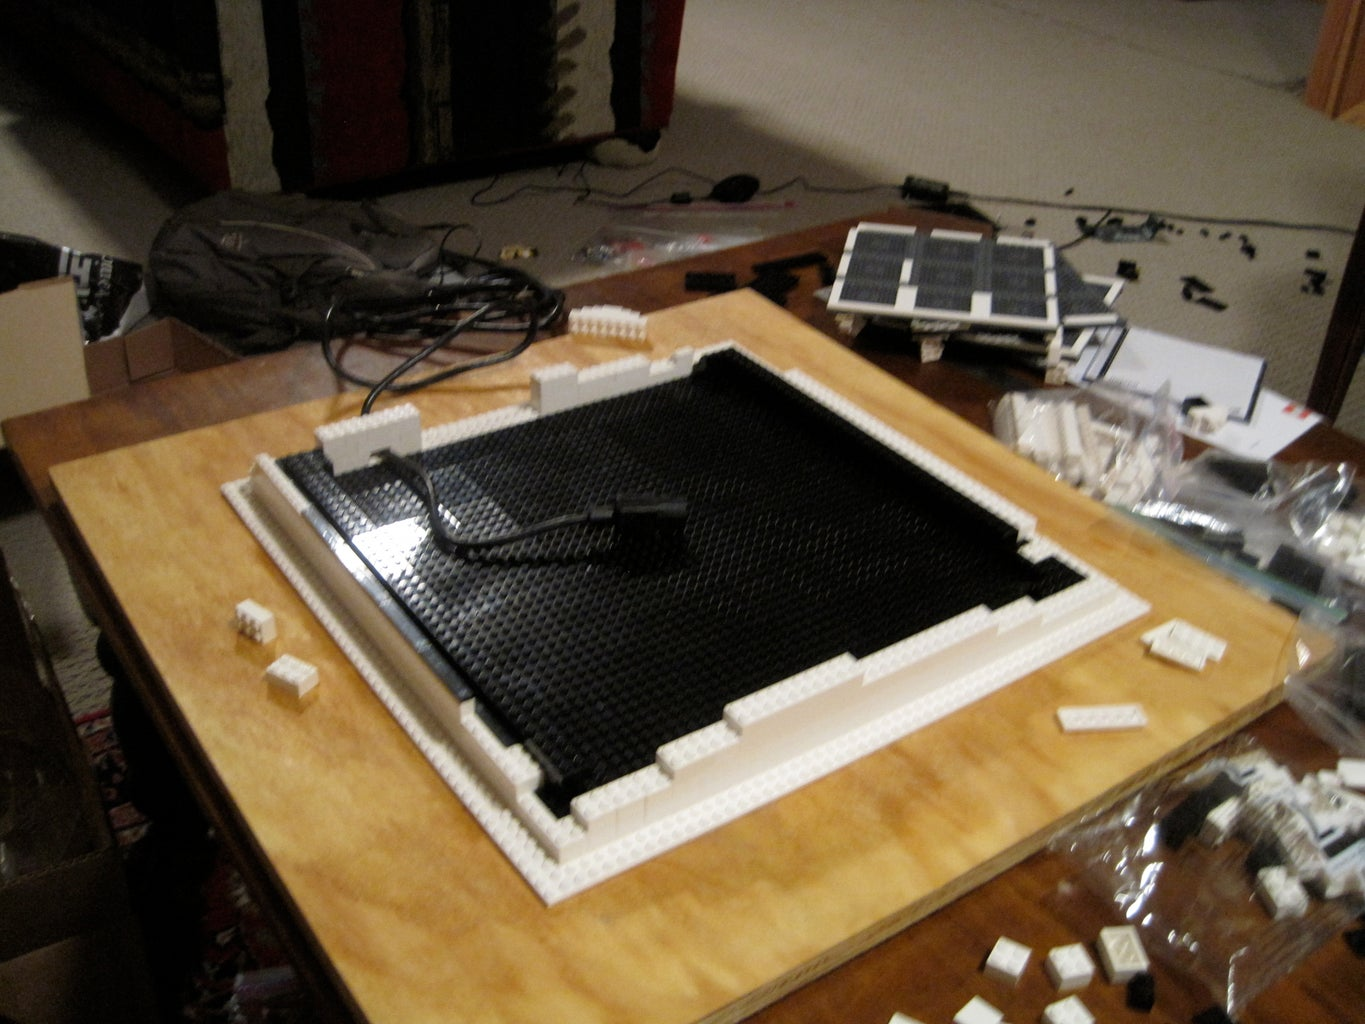 How to Build the Computer You Designed - Board